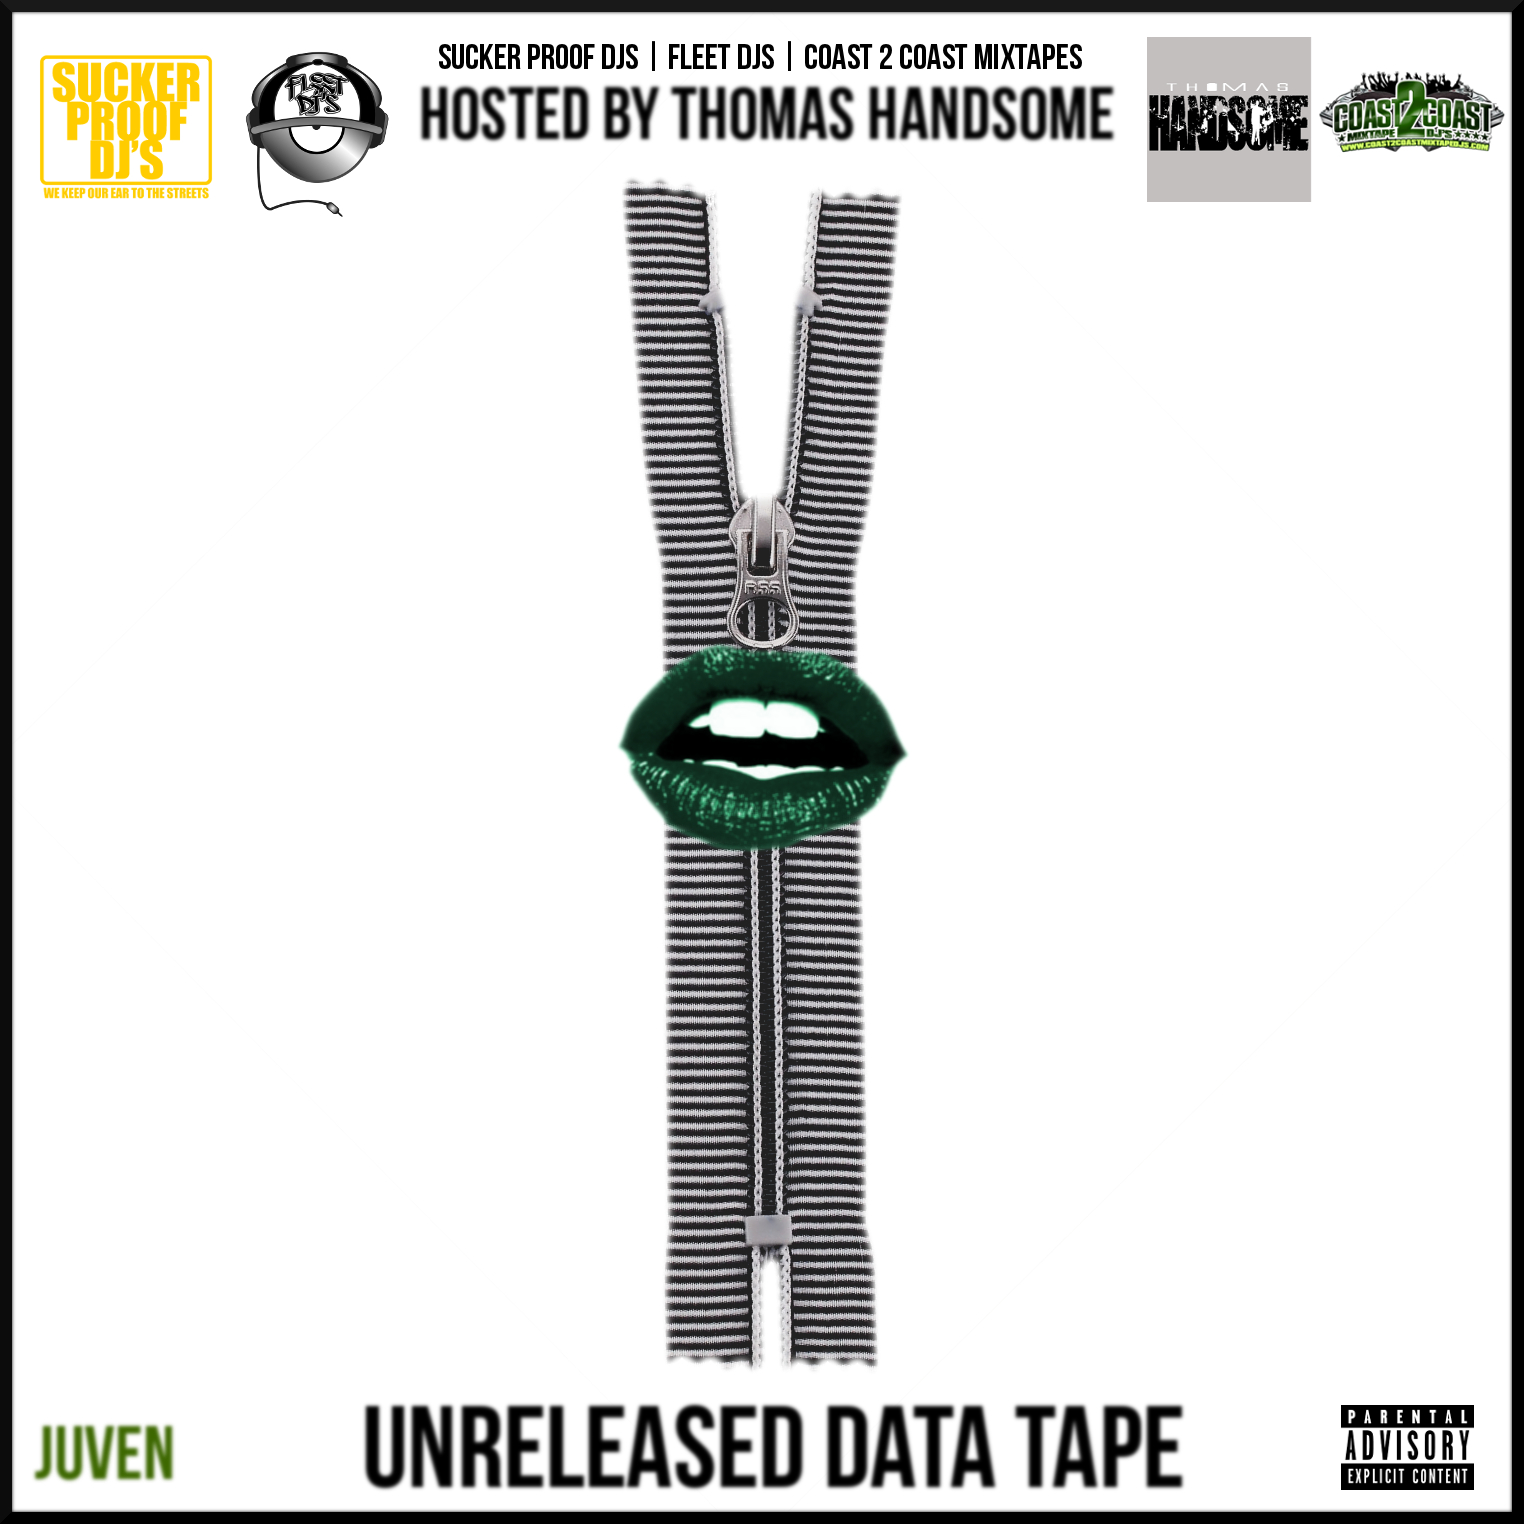 Juven – Unreleased Data Tape